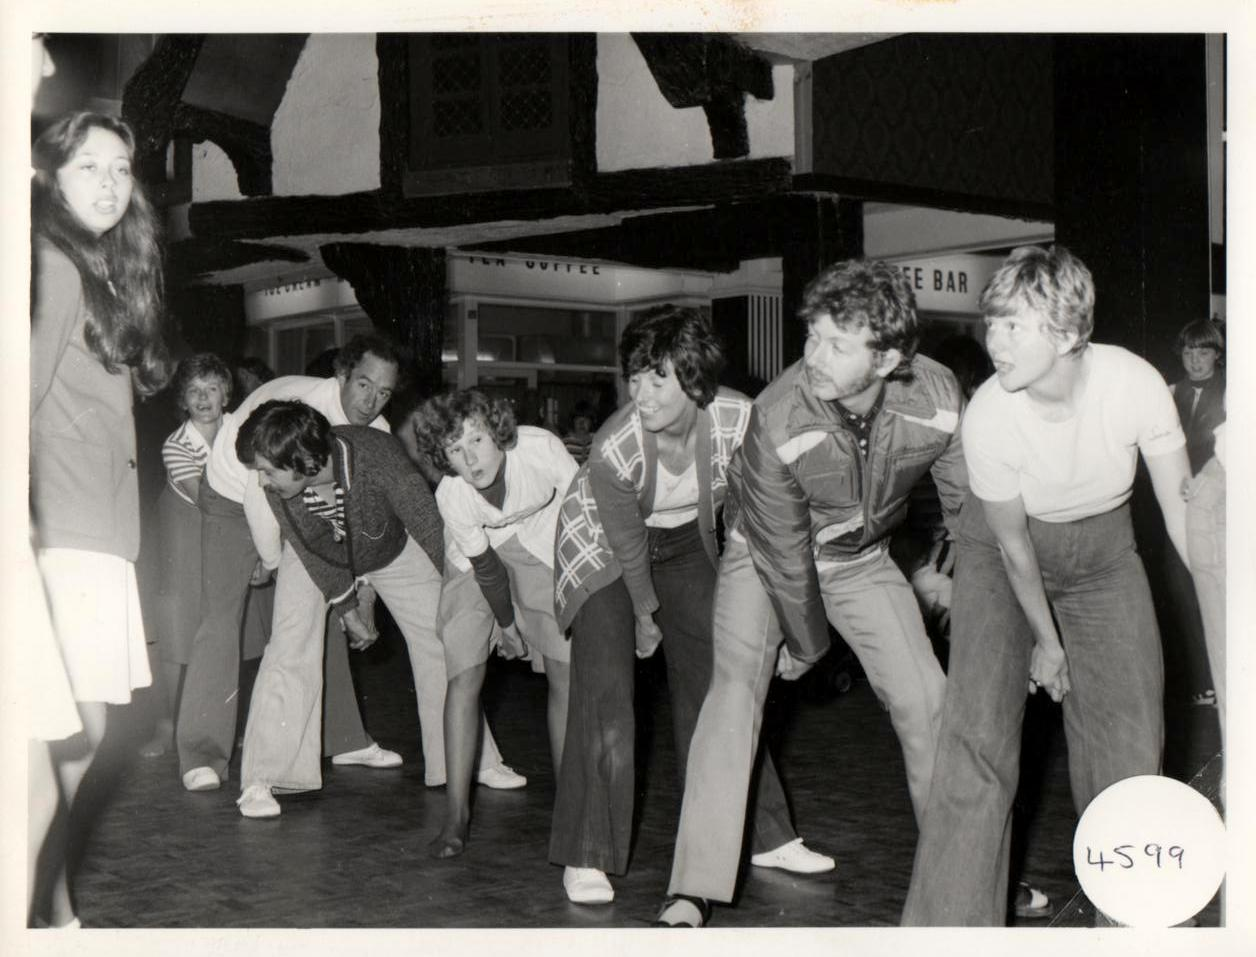 Butlins Skegness 1977 games 1 at Redcoats Reunited